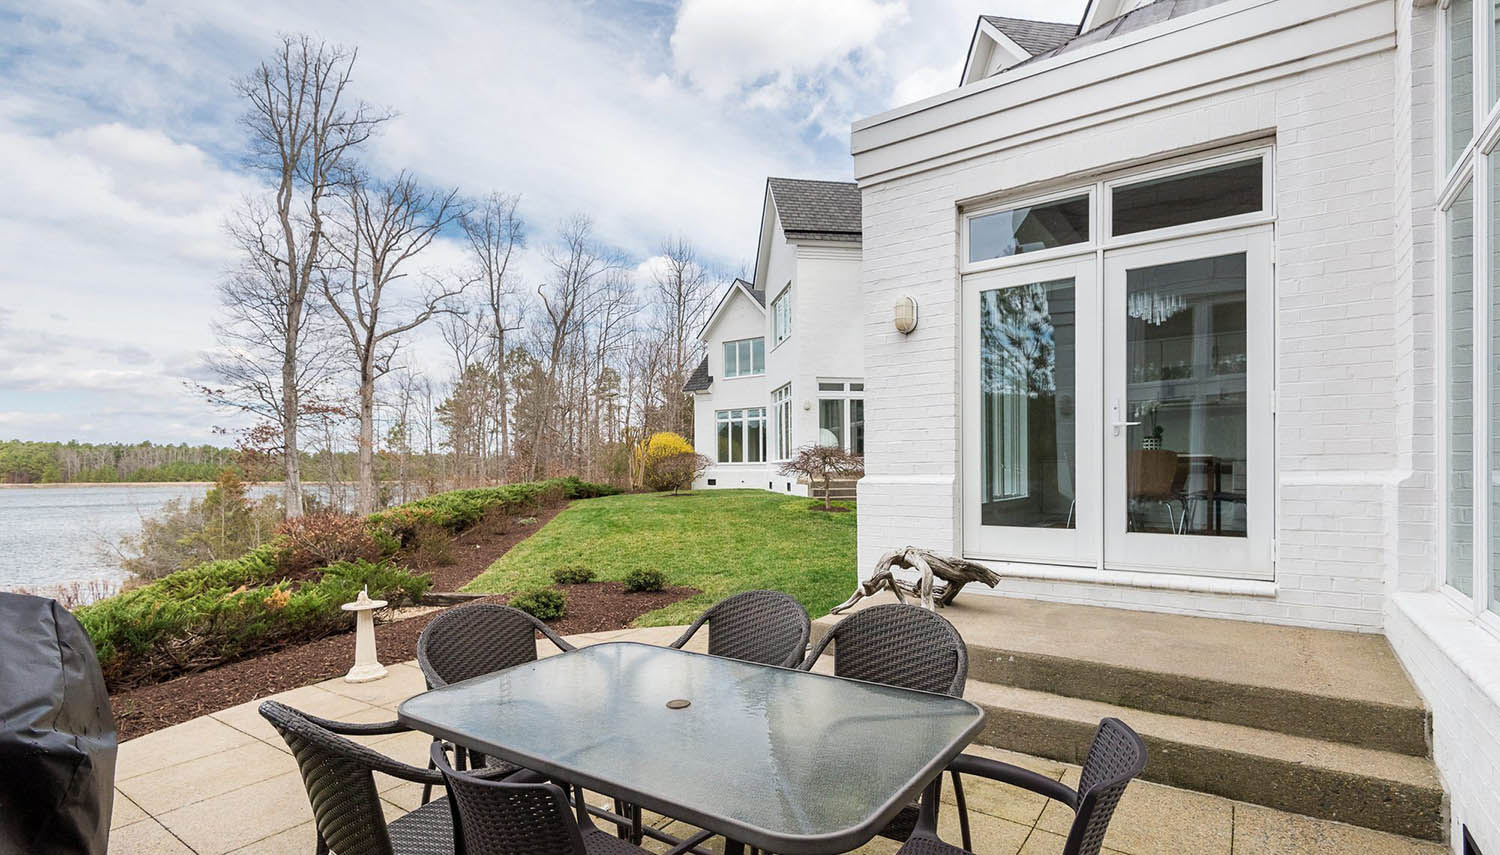 painted white brick house back porch with concrete patio and black chairs